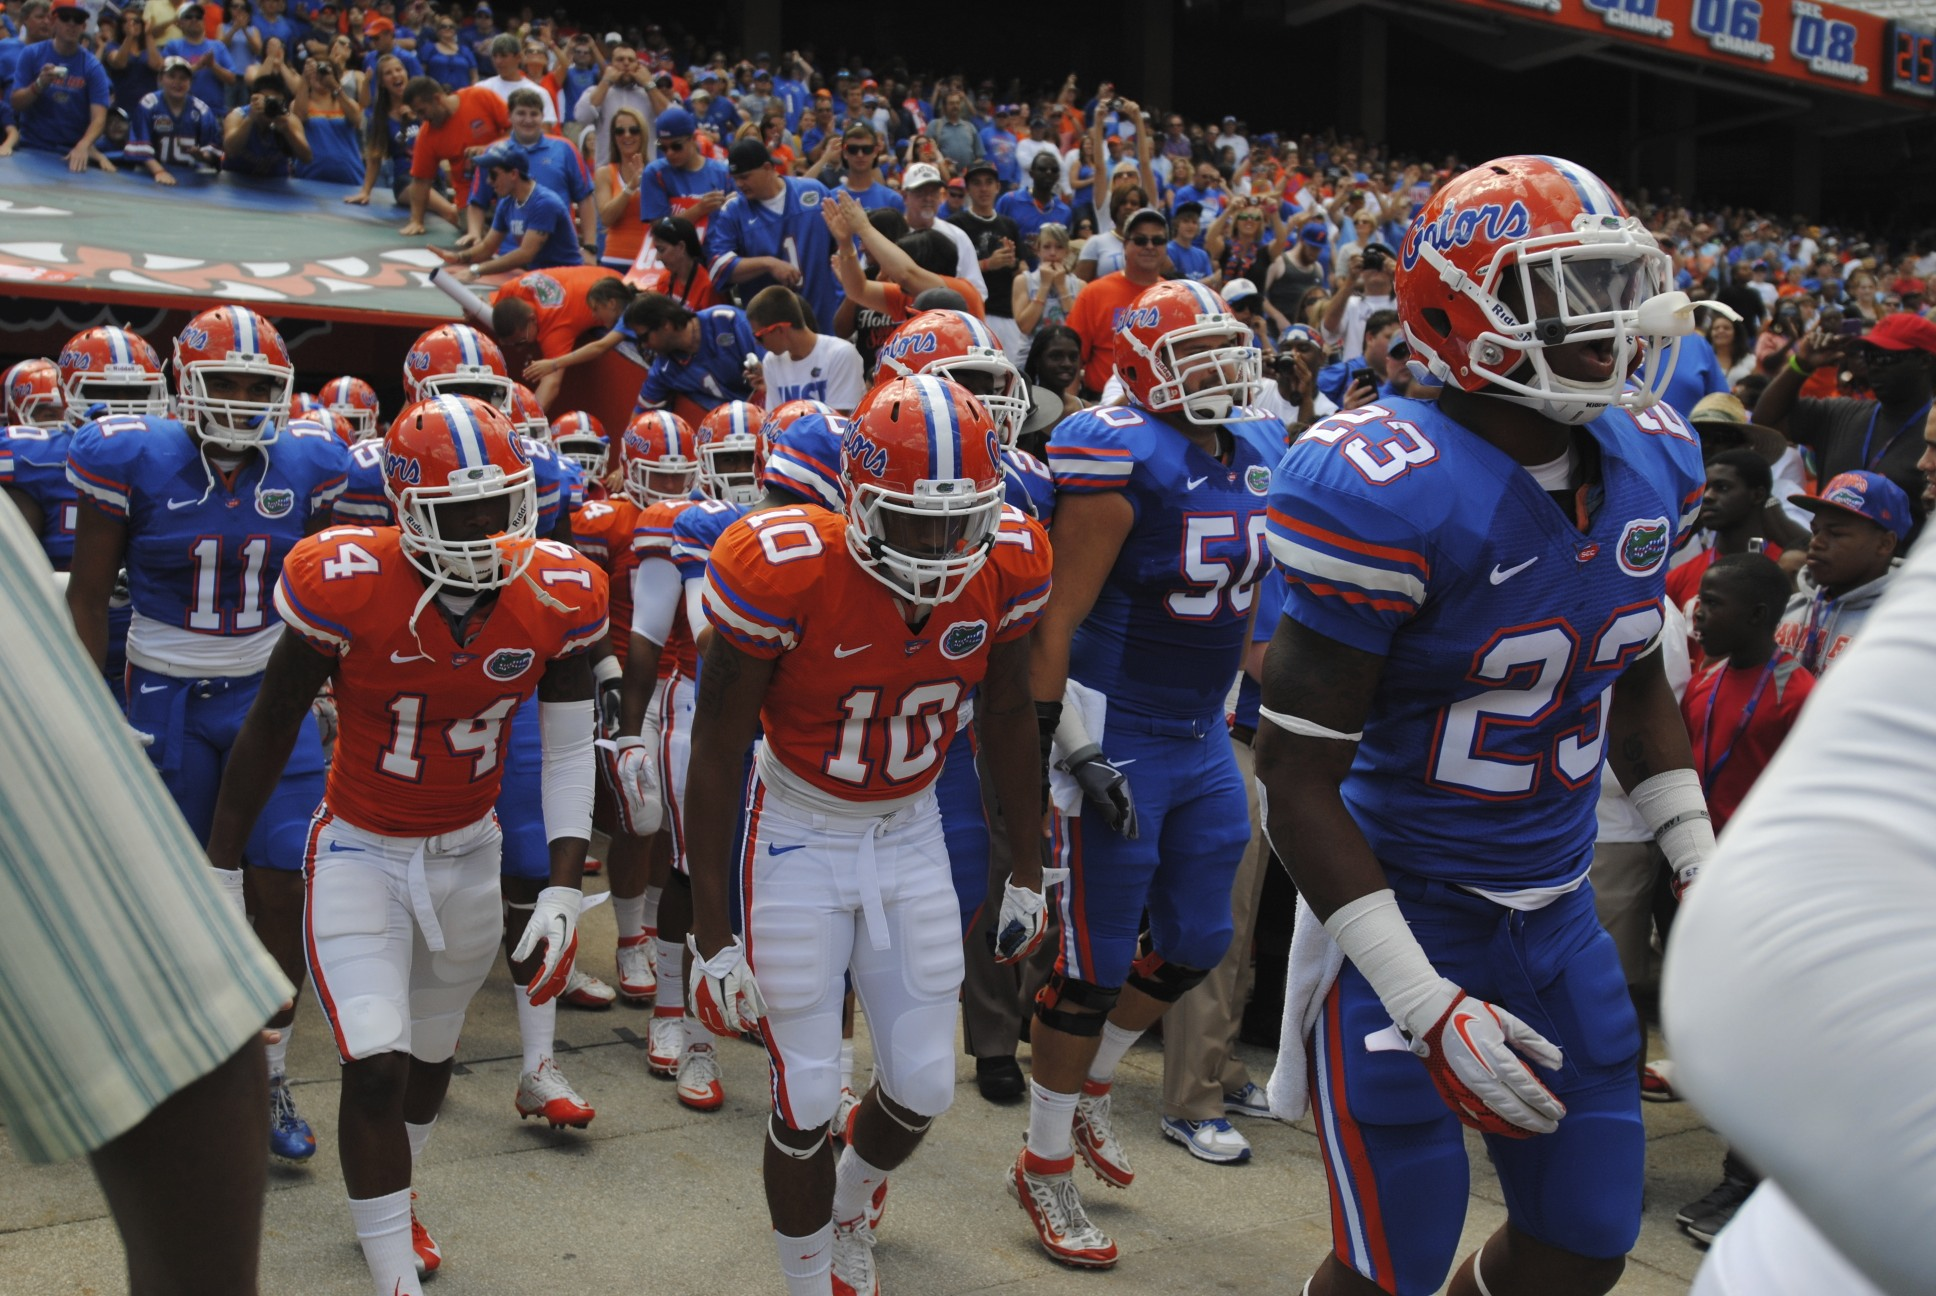 Gators take the field for the Orange and Blue Debut game.